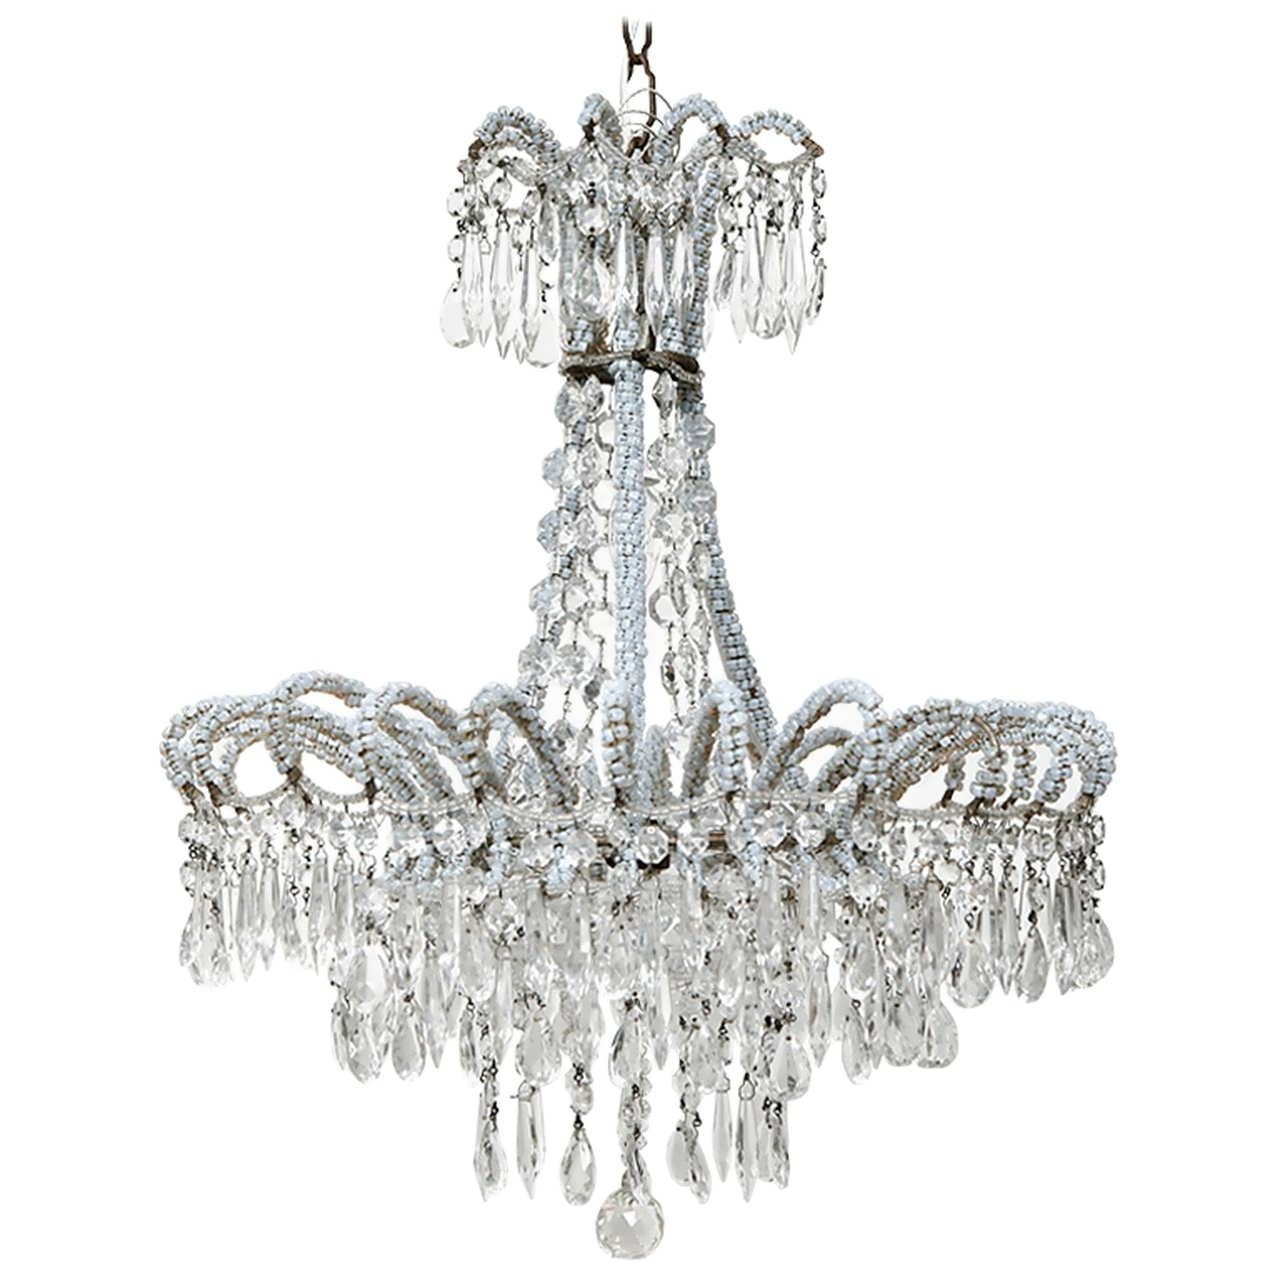 Best And Newest Chandelier : Orb Chandelier Candle Chandelier Italian Chandelier Inside Italian Chandelier Style (View 14 of 15)